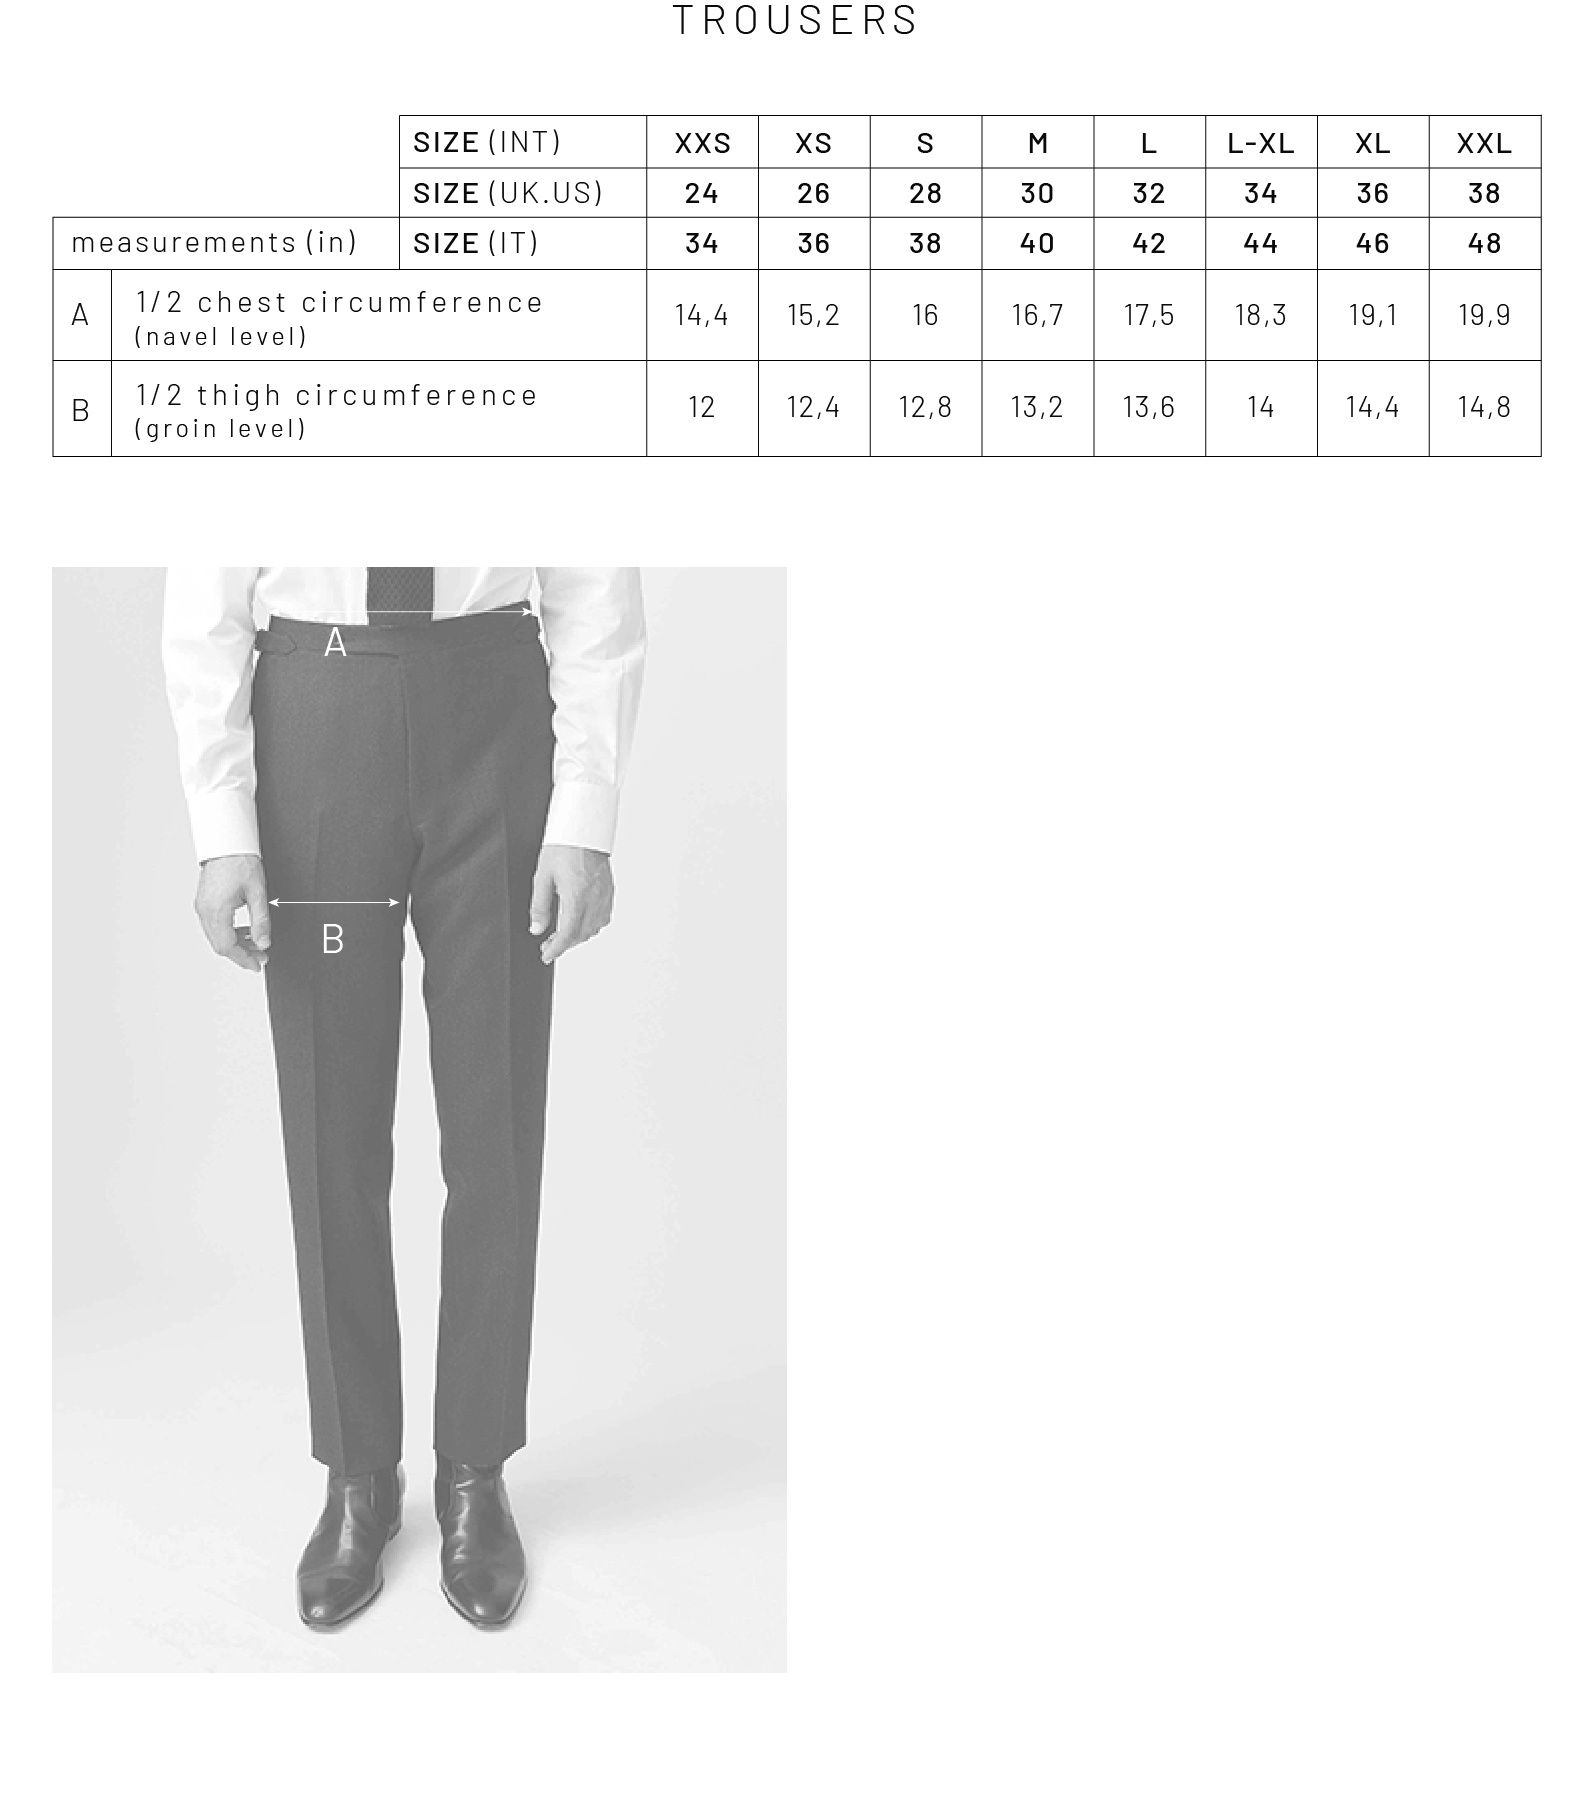 SIZING GUIDE ENGLISH VERSION - TROUSERS